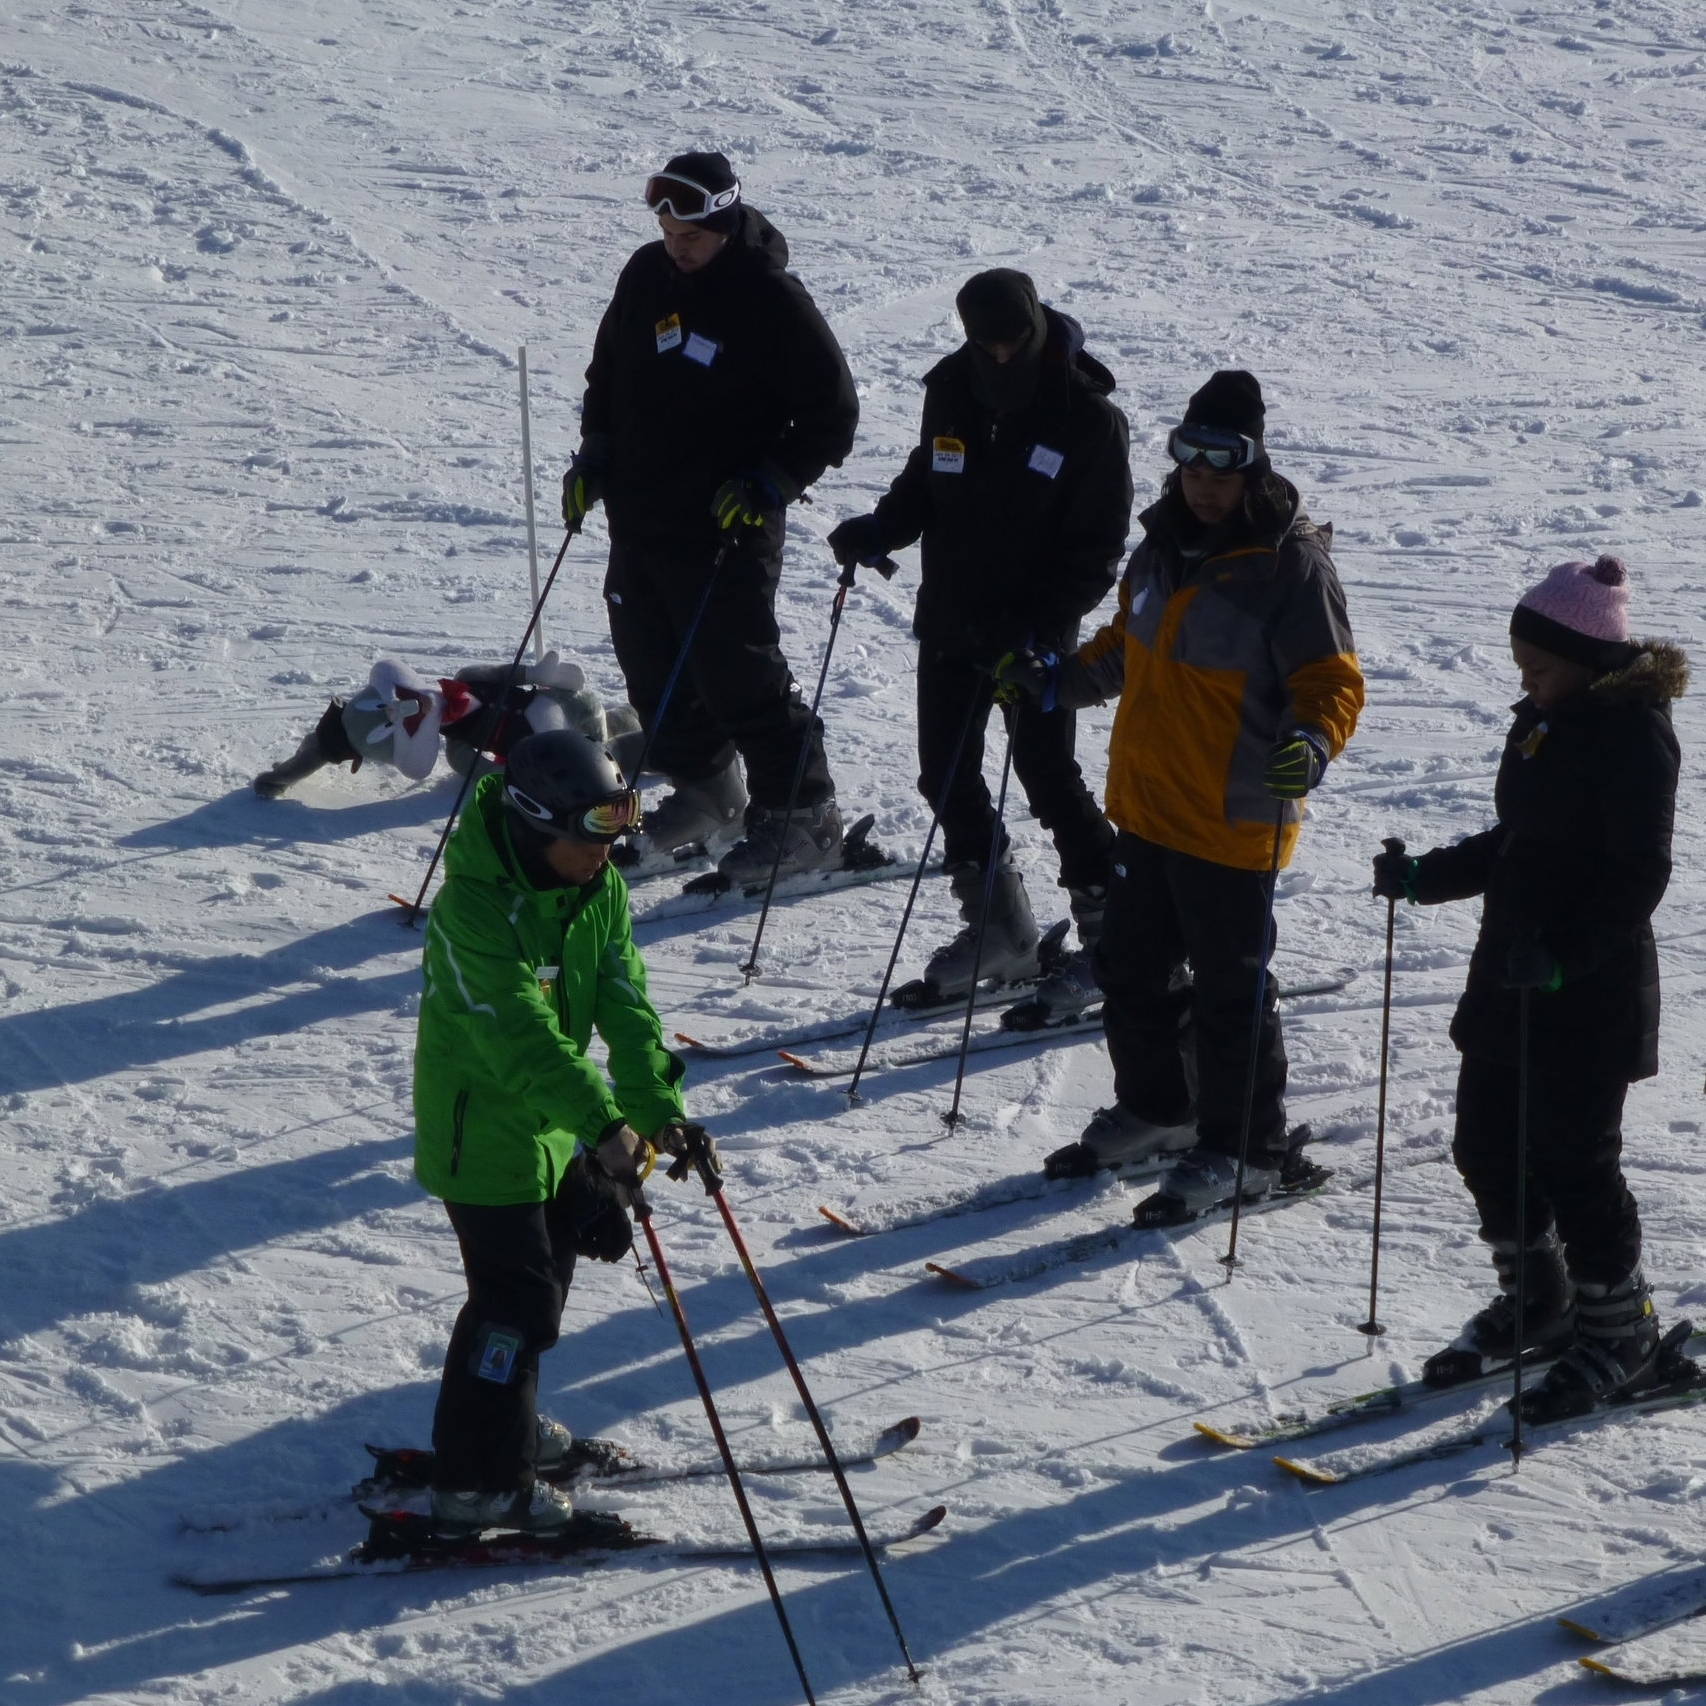 LITTLE BEAR - For beginners and those new to skiing or snowboarding. Group lesson, beginner area lift ticket and equipment rental. For Ages 6 and up. $70